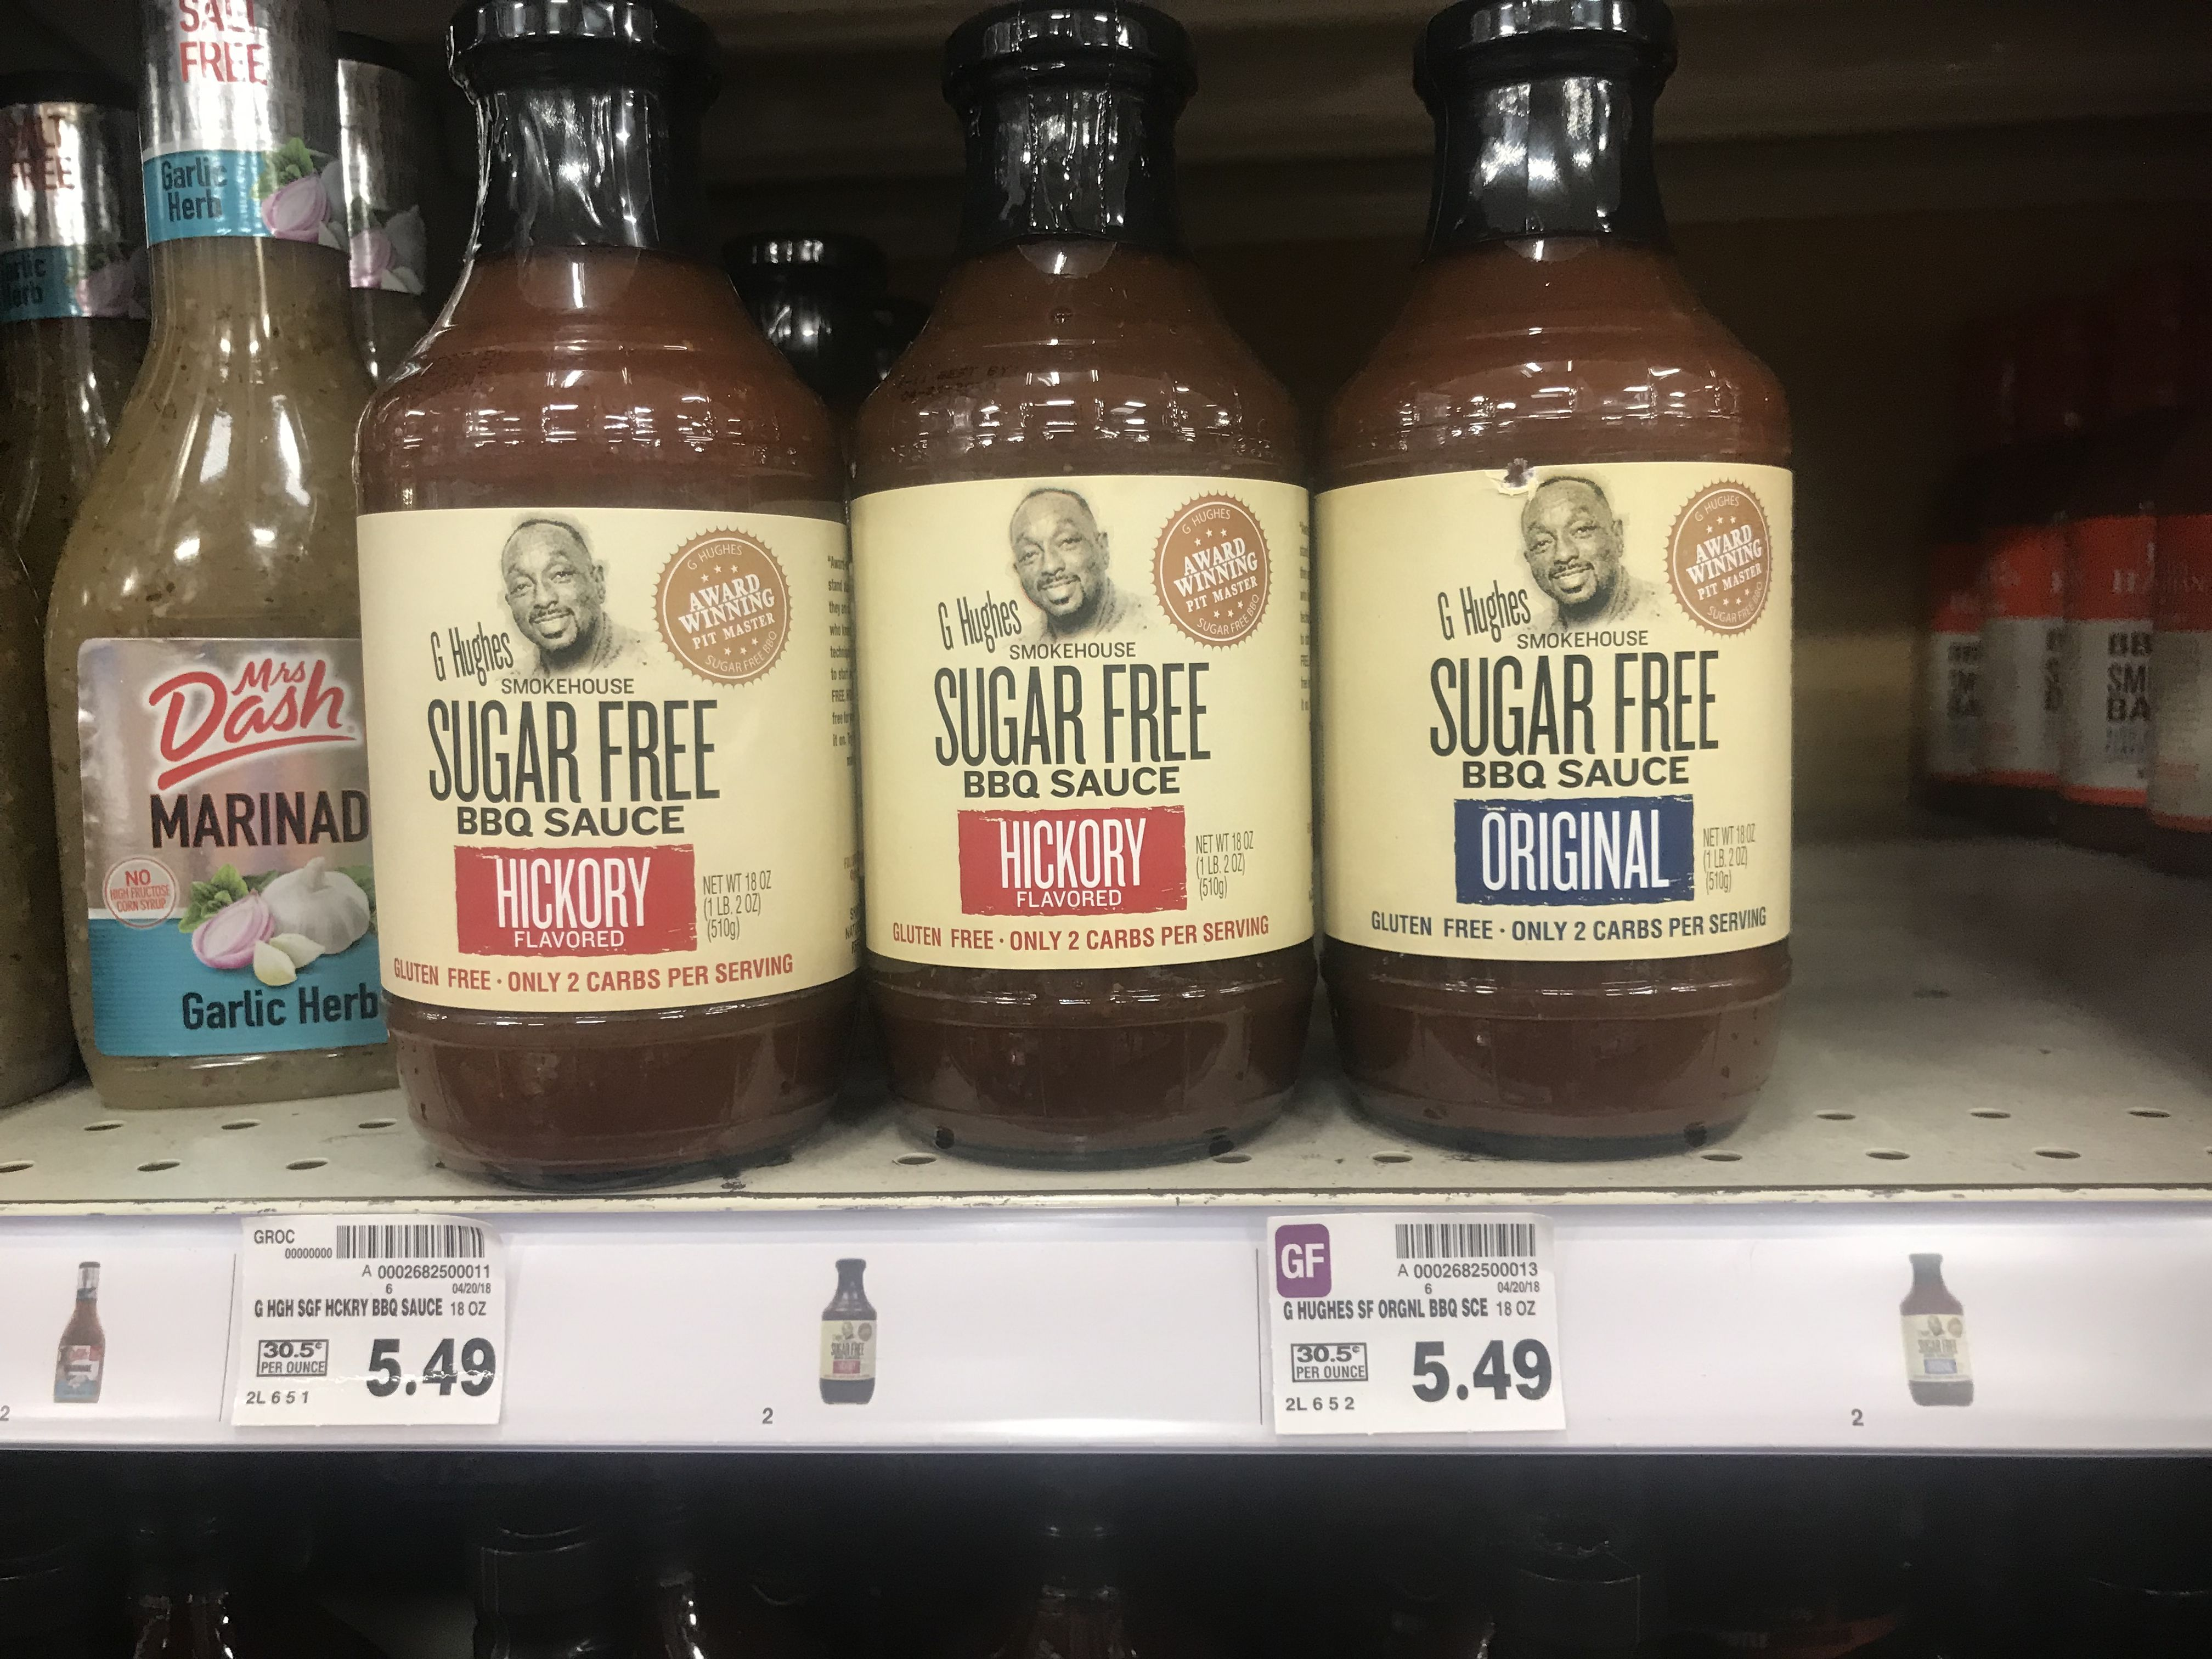 The Only Sugar Free Bbq Sauce At My Local GerbesKroger